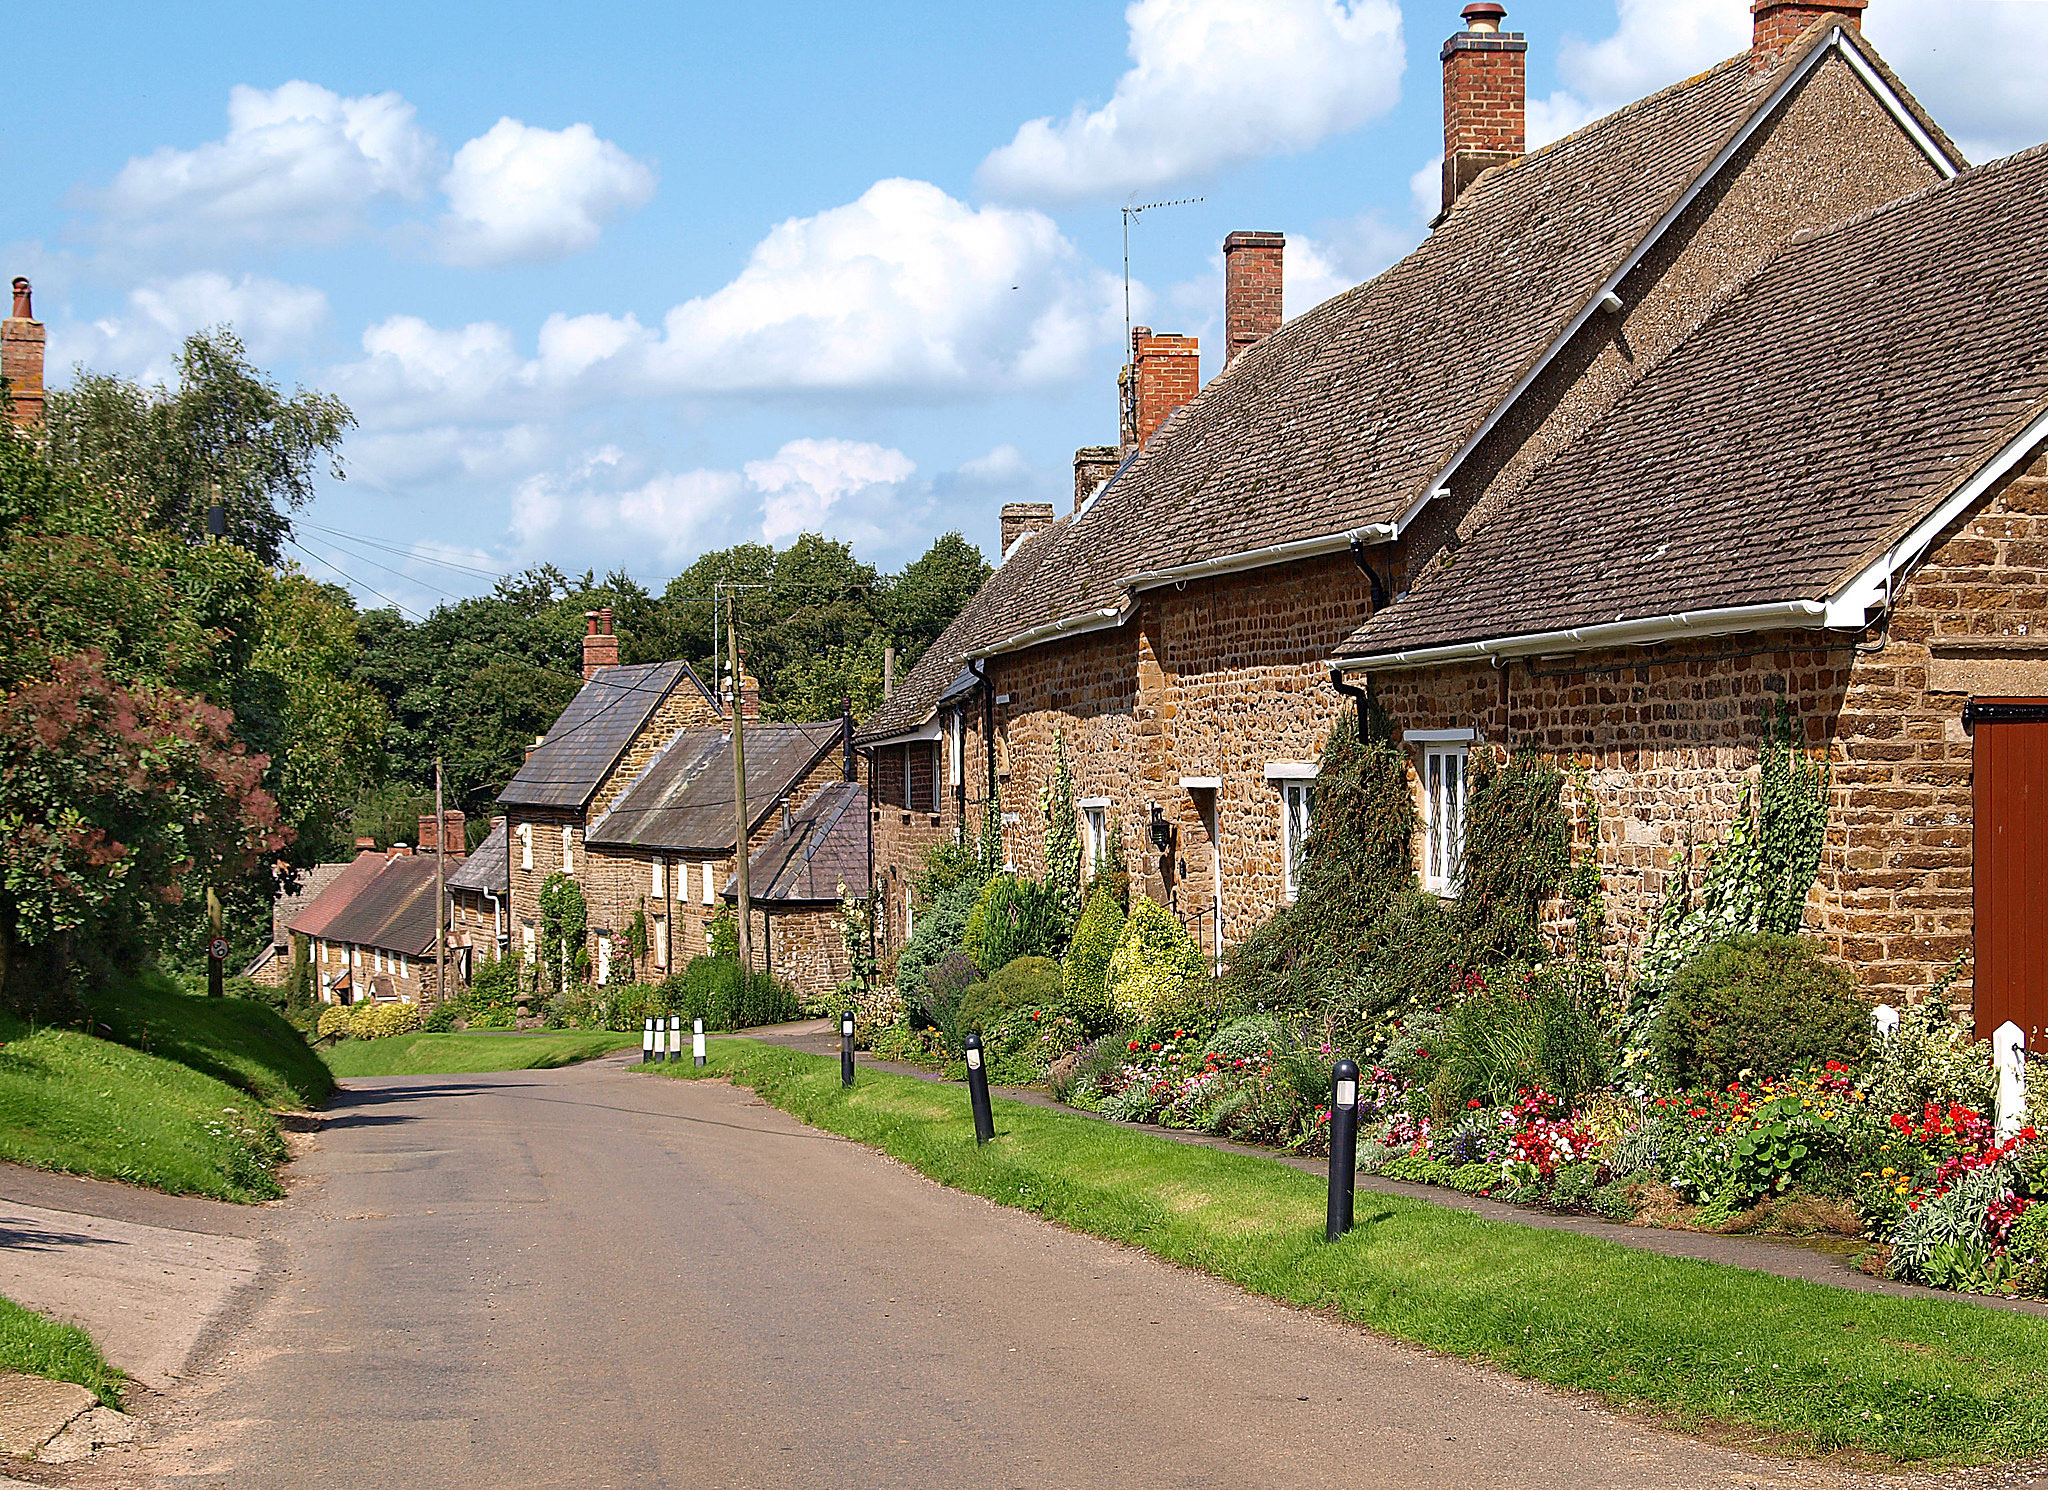 The main street of Preston Capes, Northamptonshire by Andrew S Brown.jpg